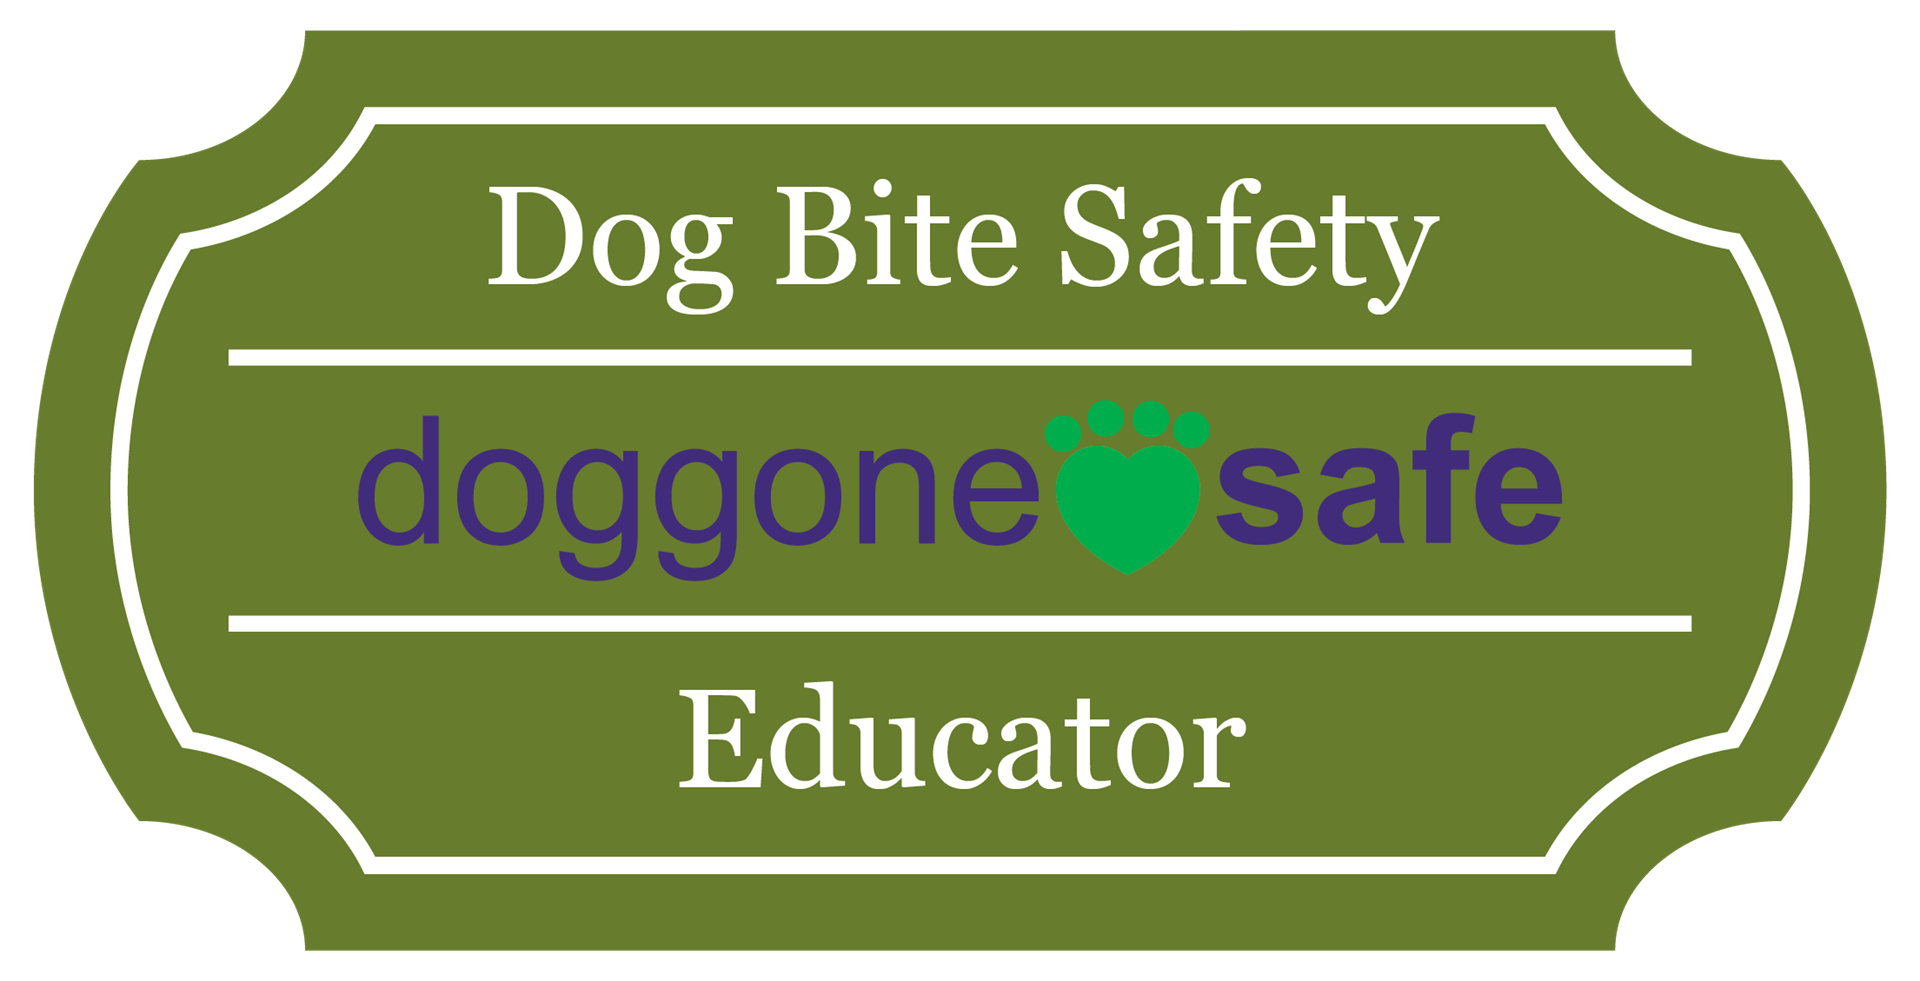 Dog Bite Safety Educator